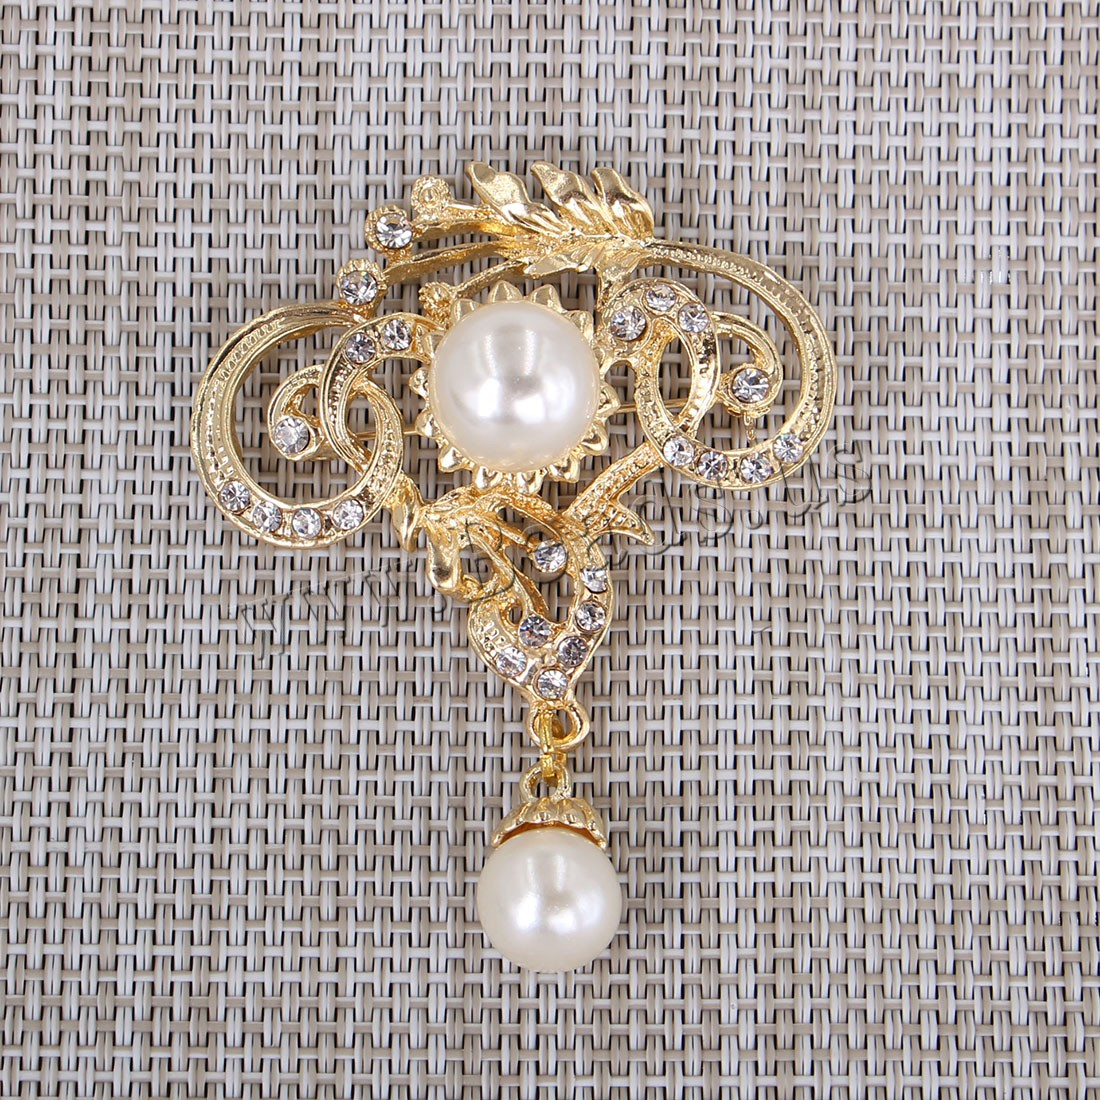 Buy Plastic Pearl Brooch Zinc Alloy Plastic Pearl gold color plated woman & rhinestone 52x60mm Sold PC